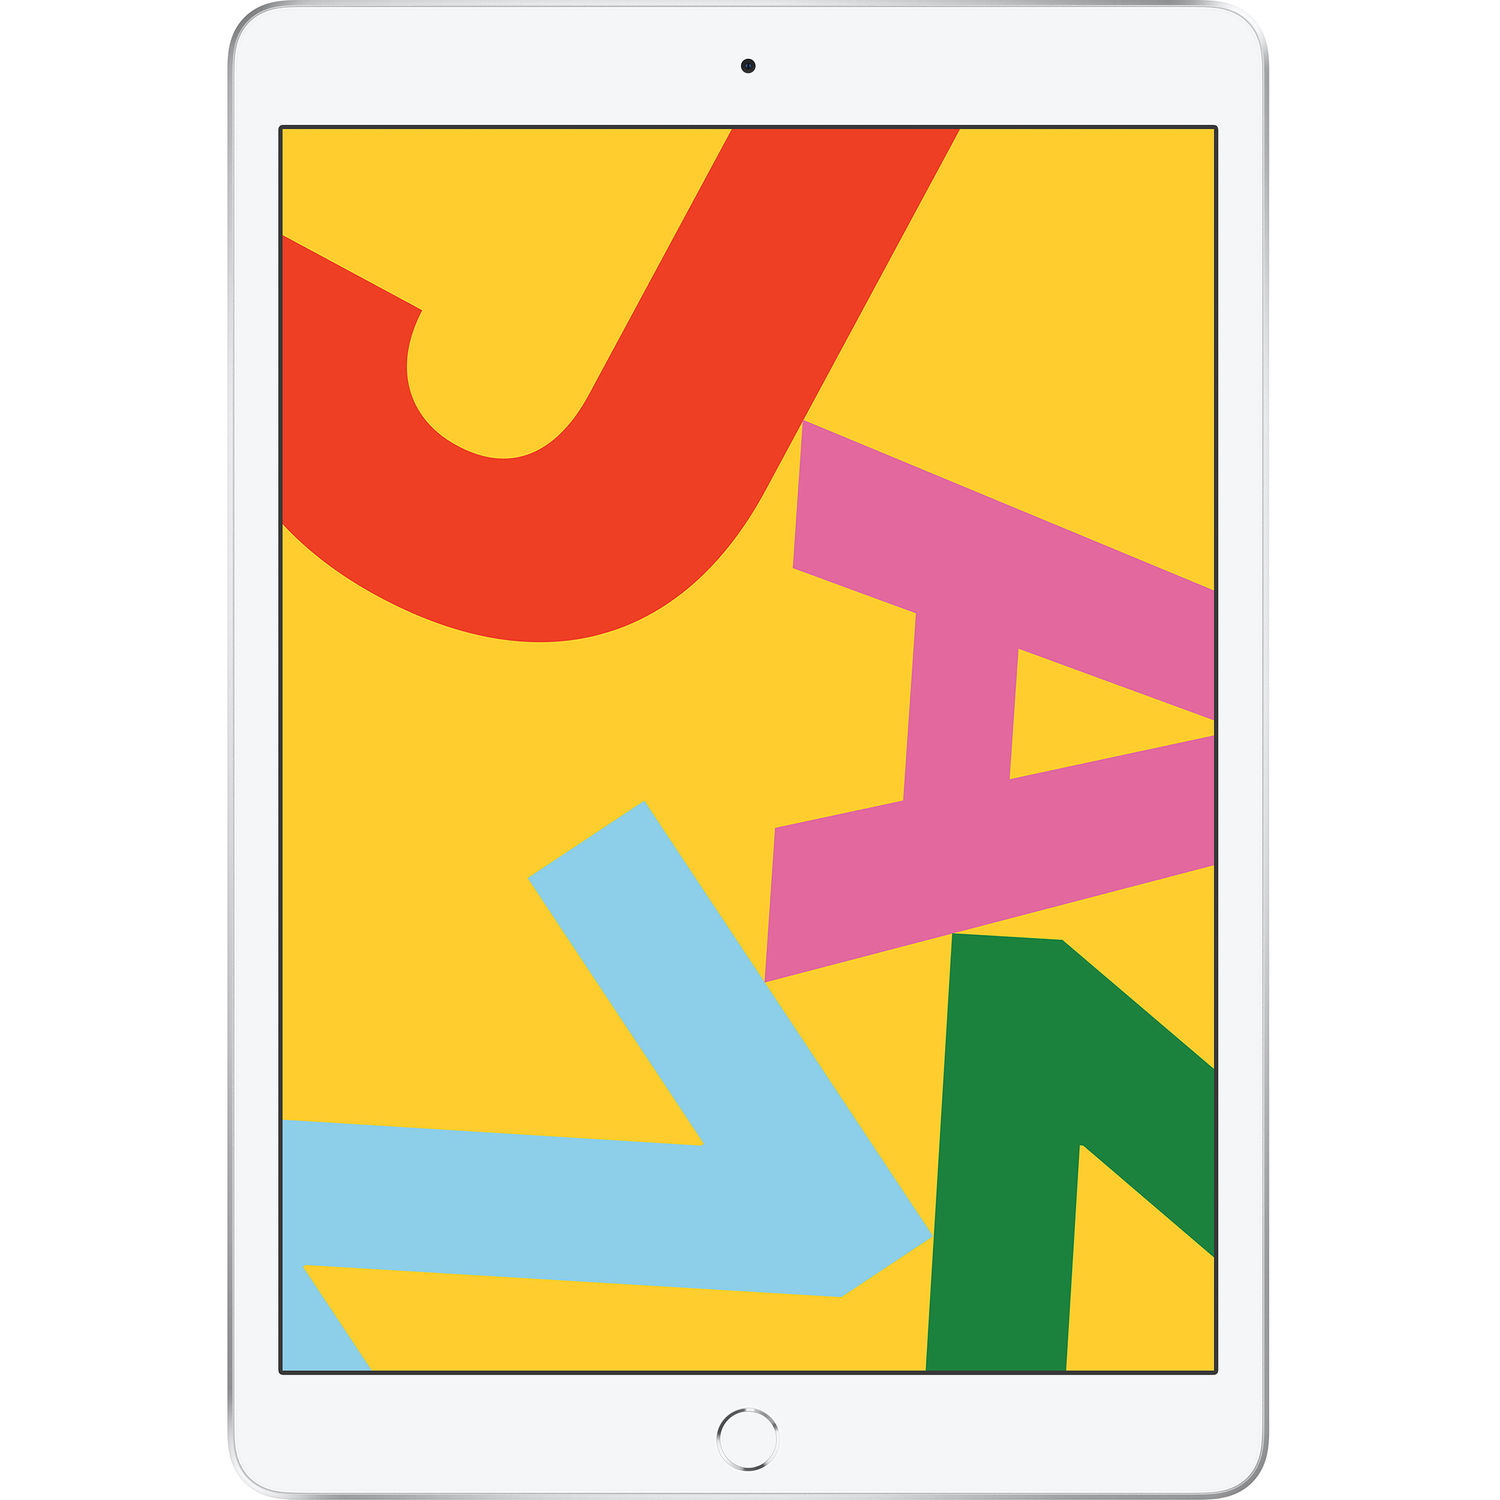 Image of Apple iPad 10.2 (2019) 32GB Wifi - White silver [with 1 year official Apple Warranty]